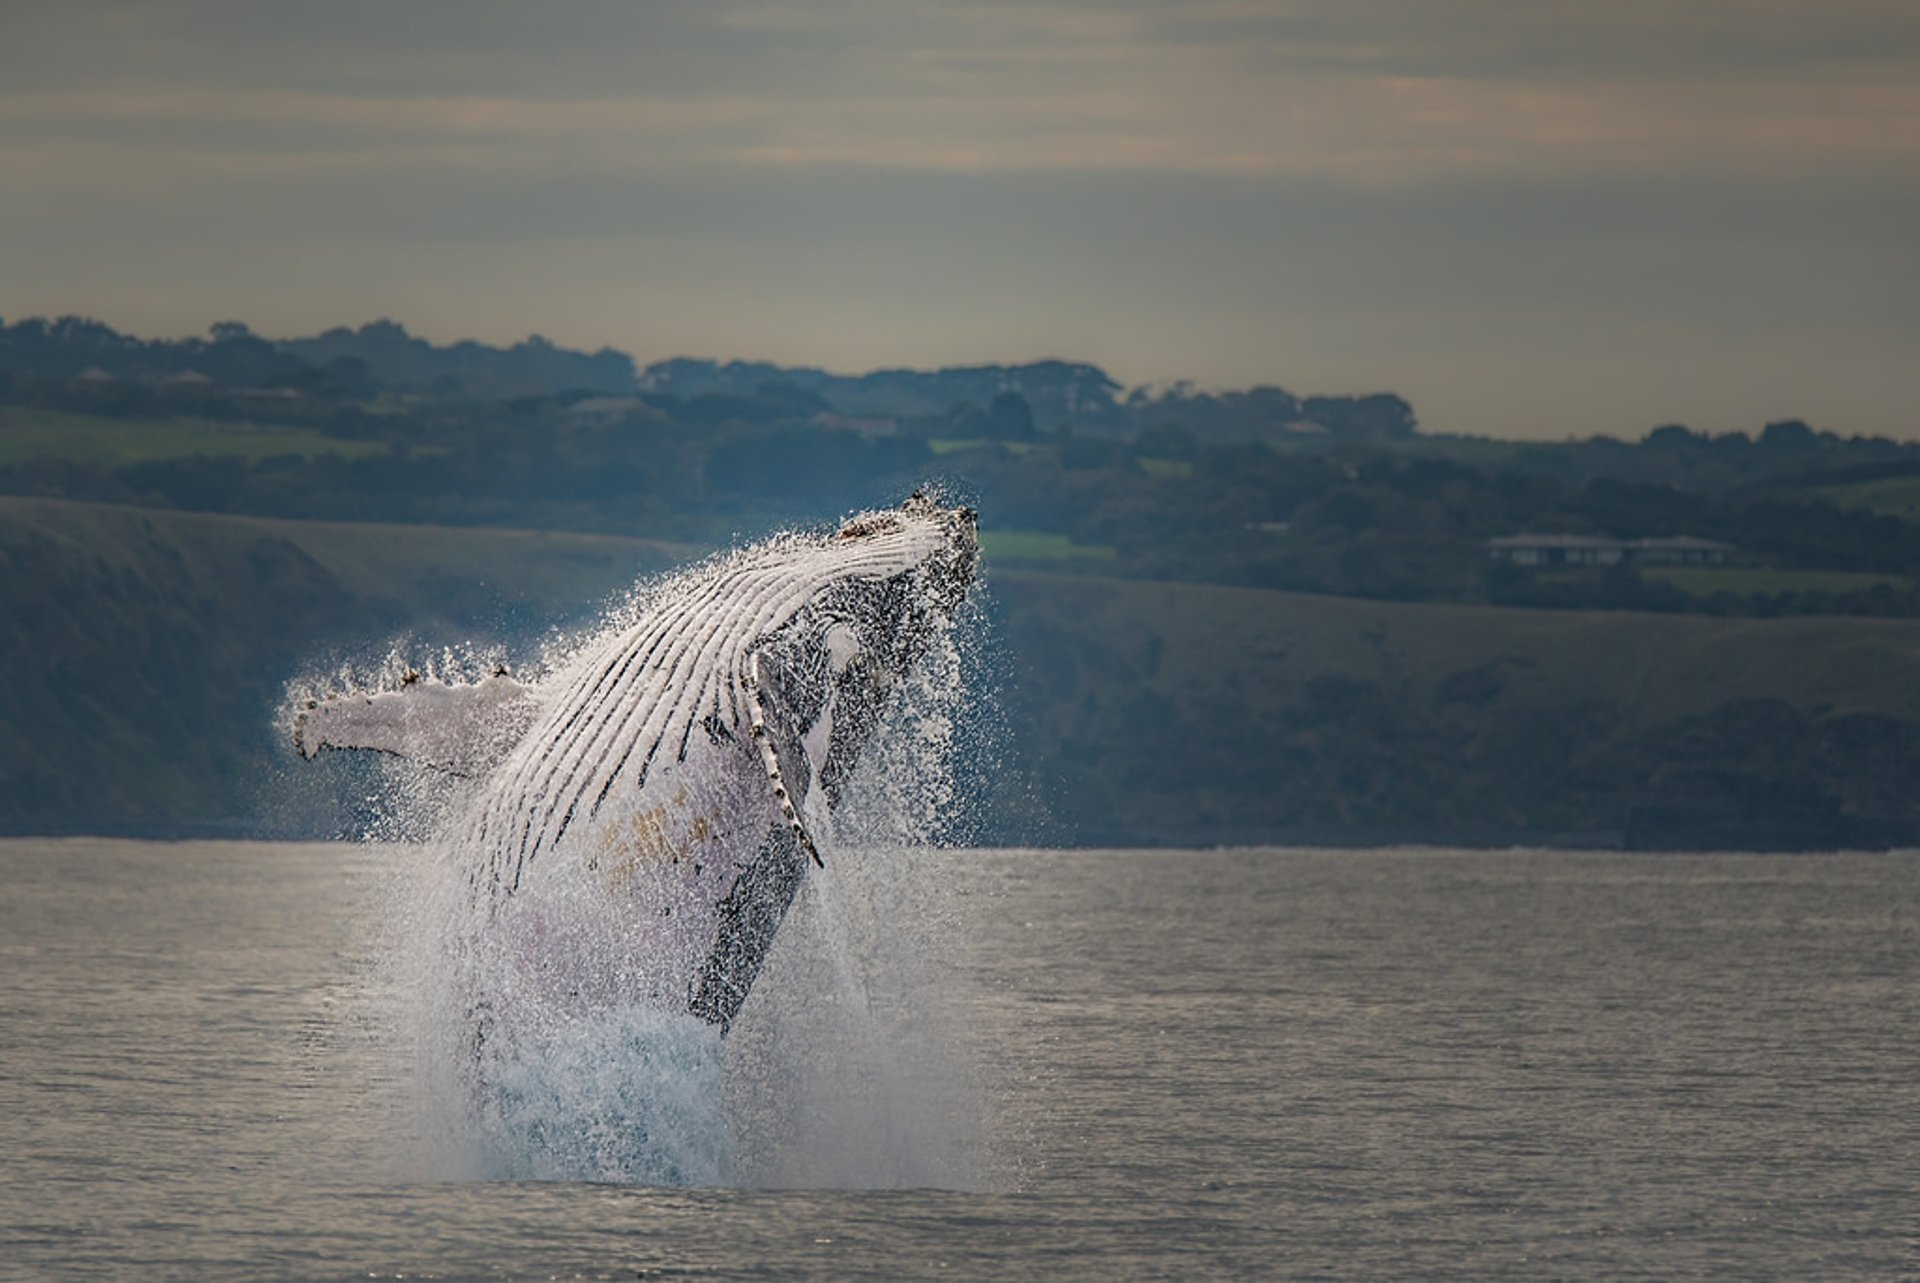 Whale Watching in Victoria in Victoria 2020 - Best Time